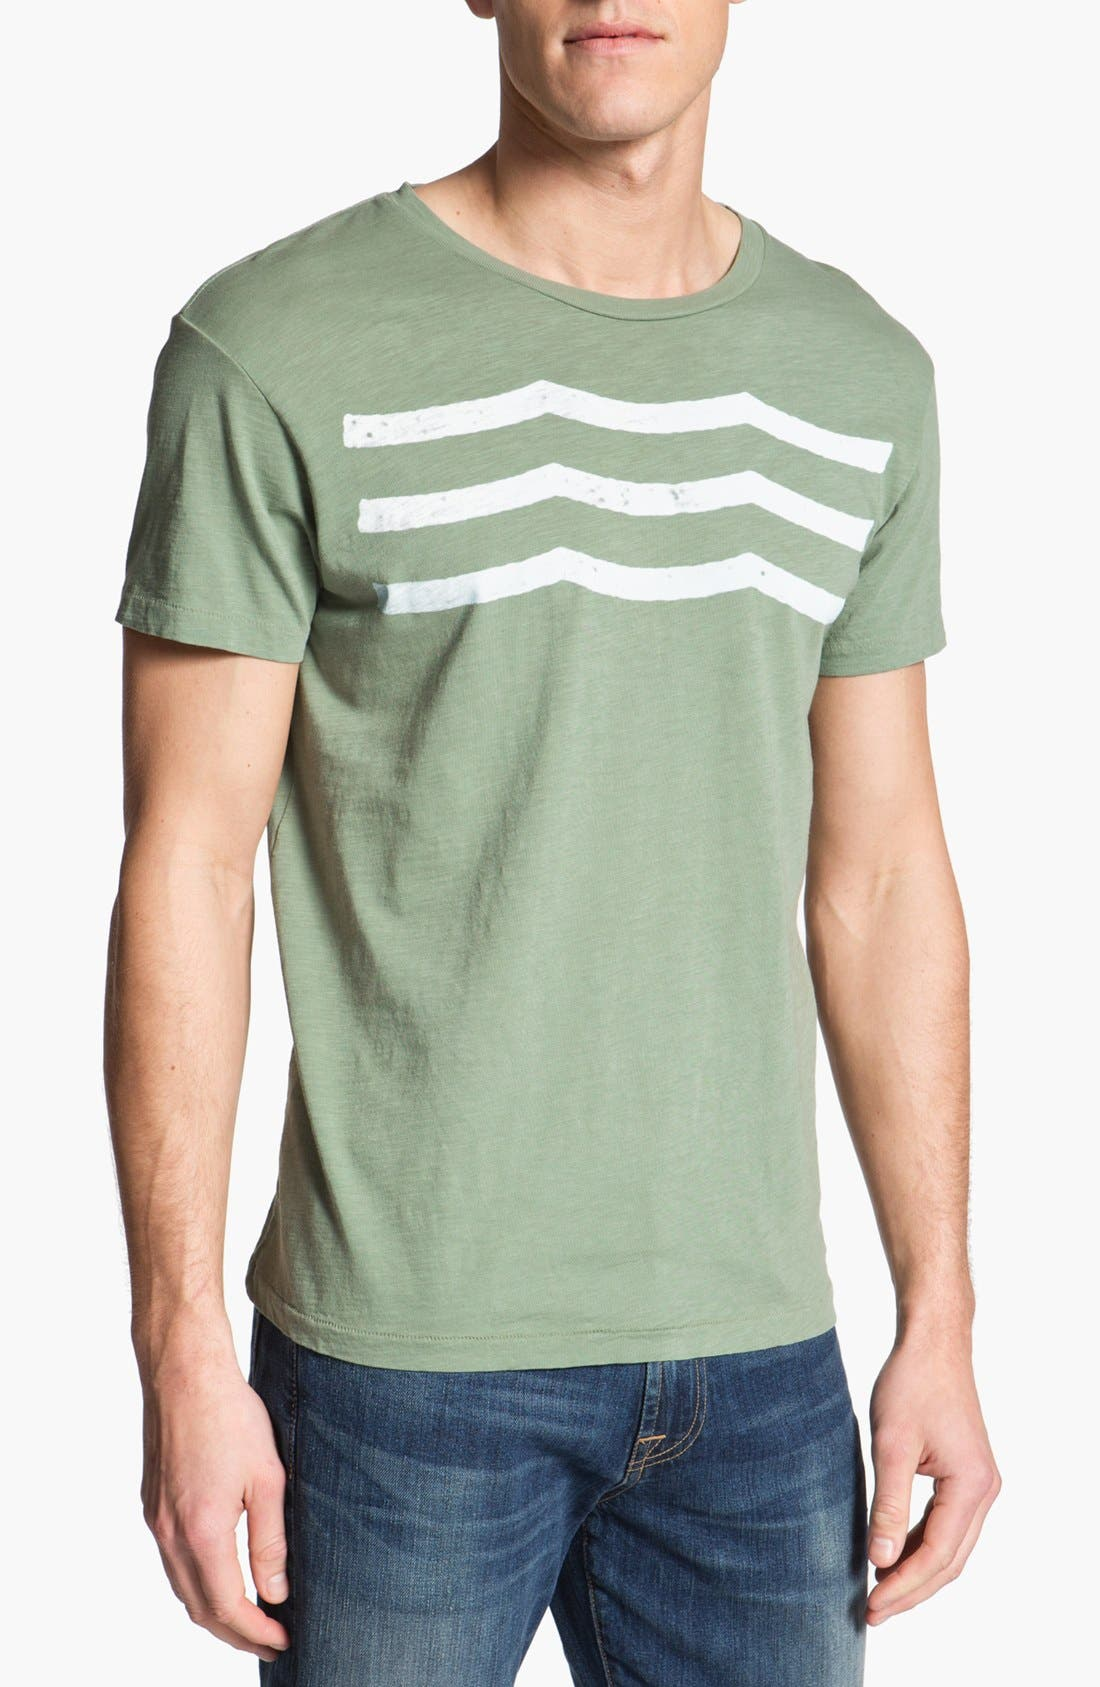 Main Image - Sol Angeles 'Waves' Graphic T-Shirt